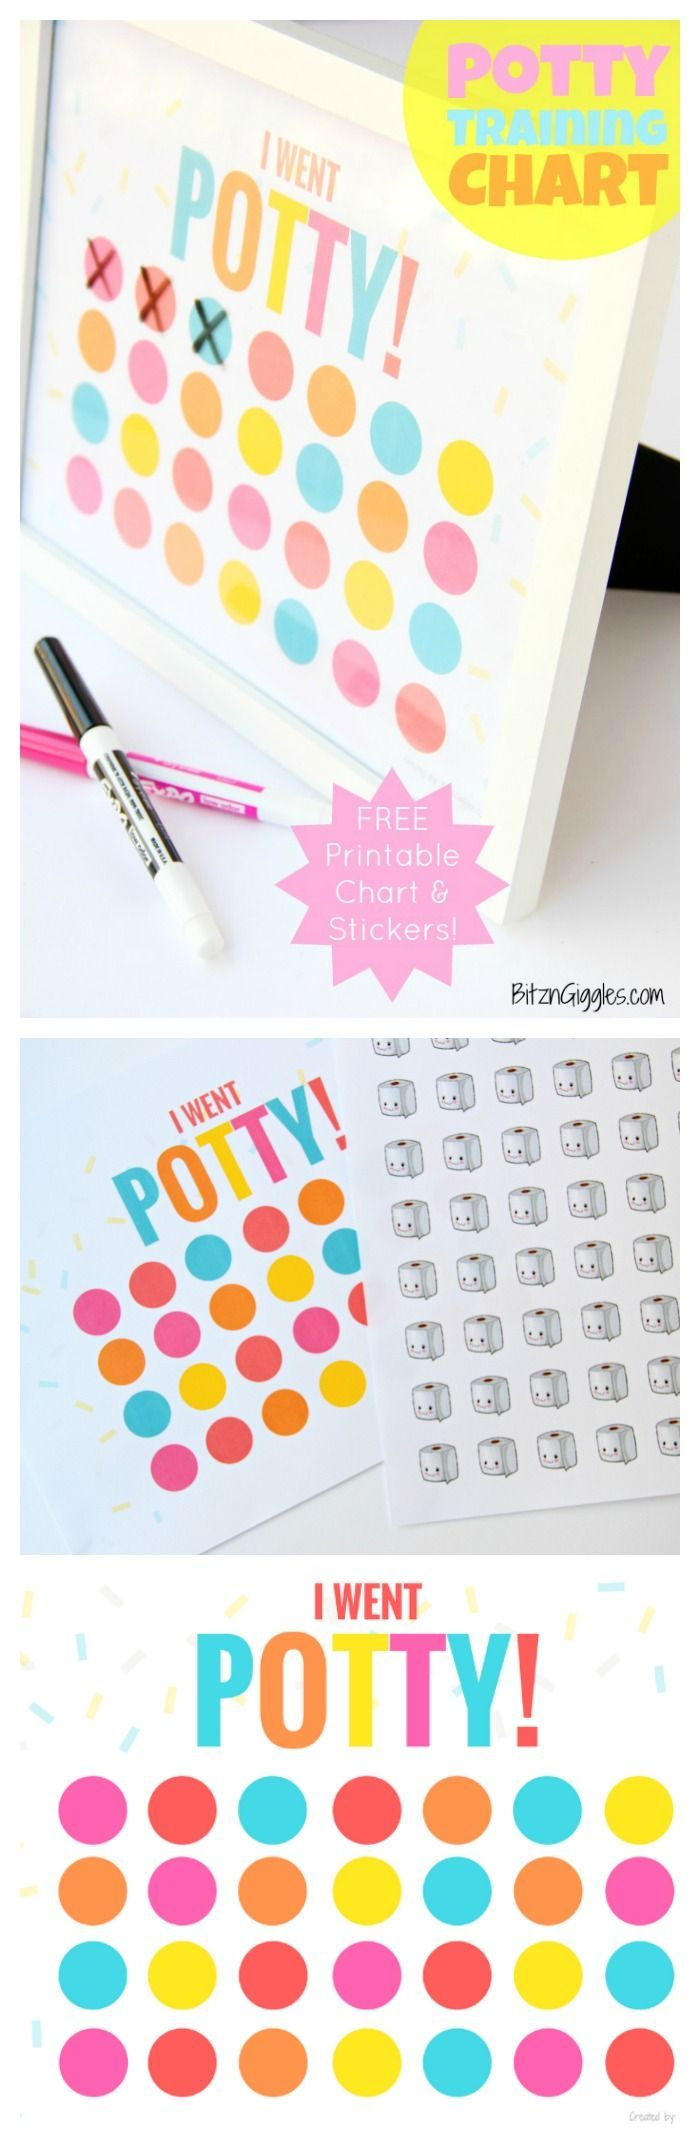 best ideas about potty training charts potty printable potty training chart